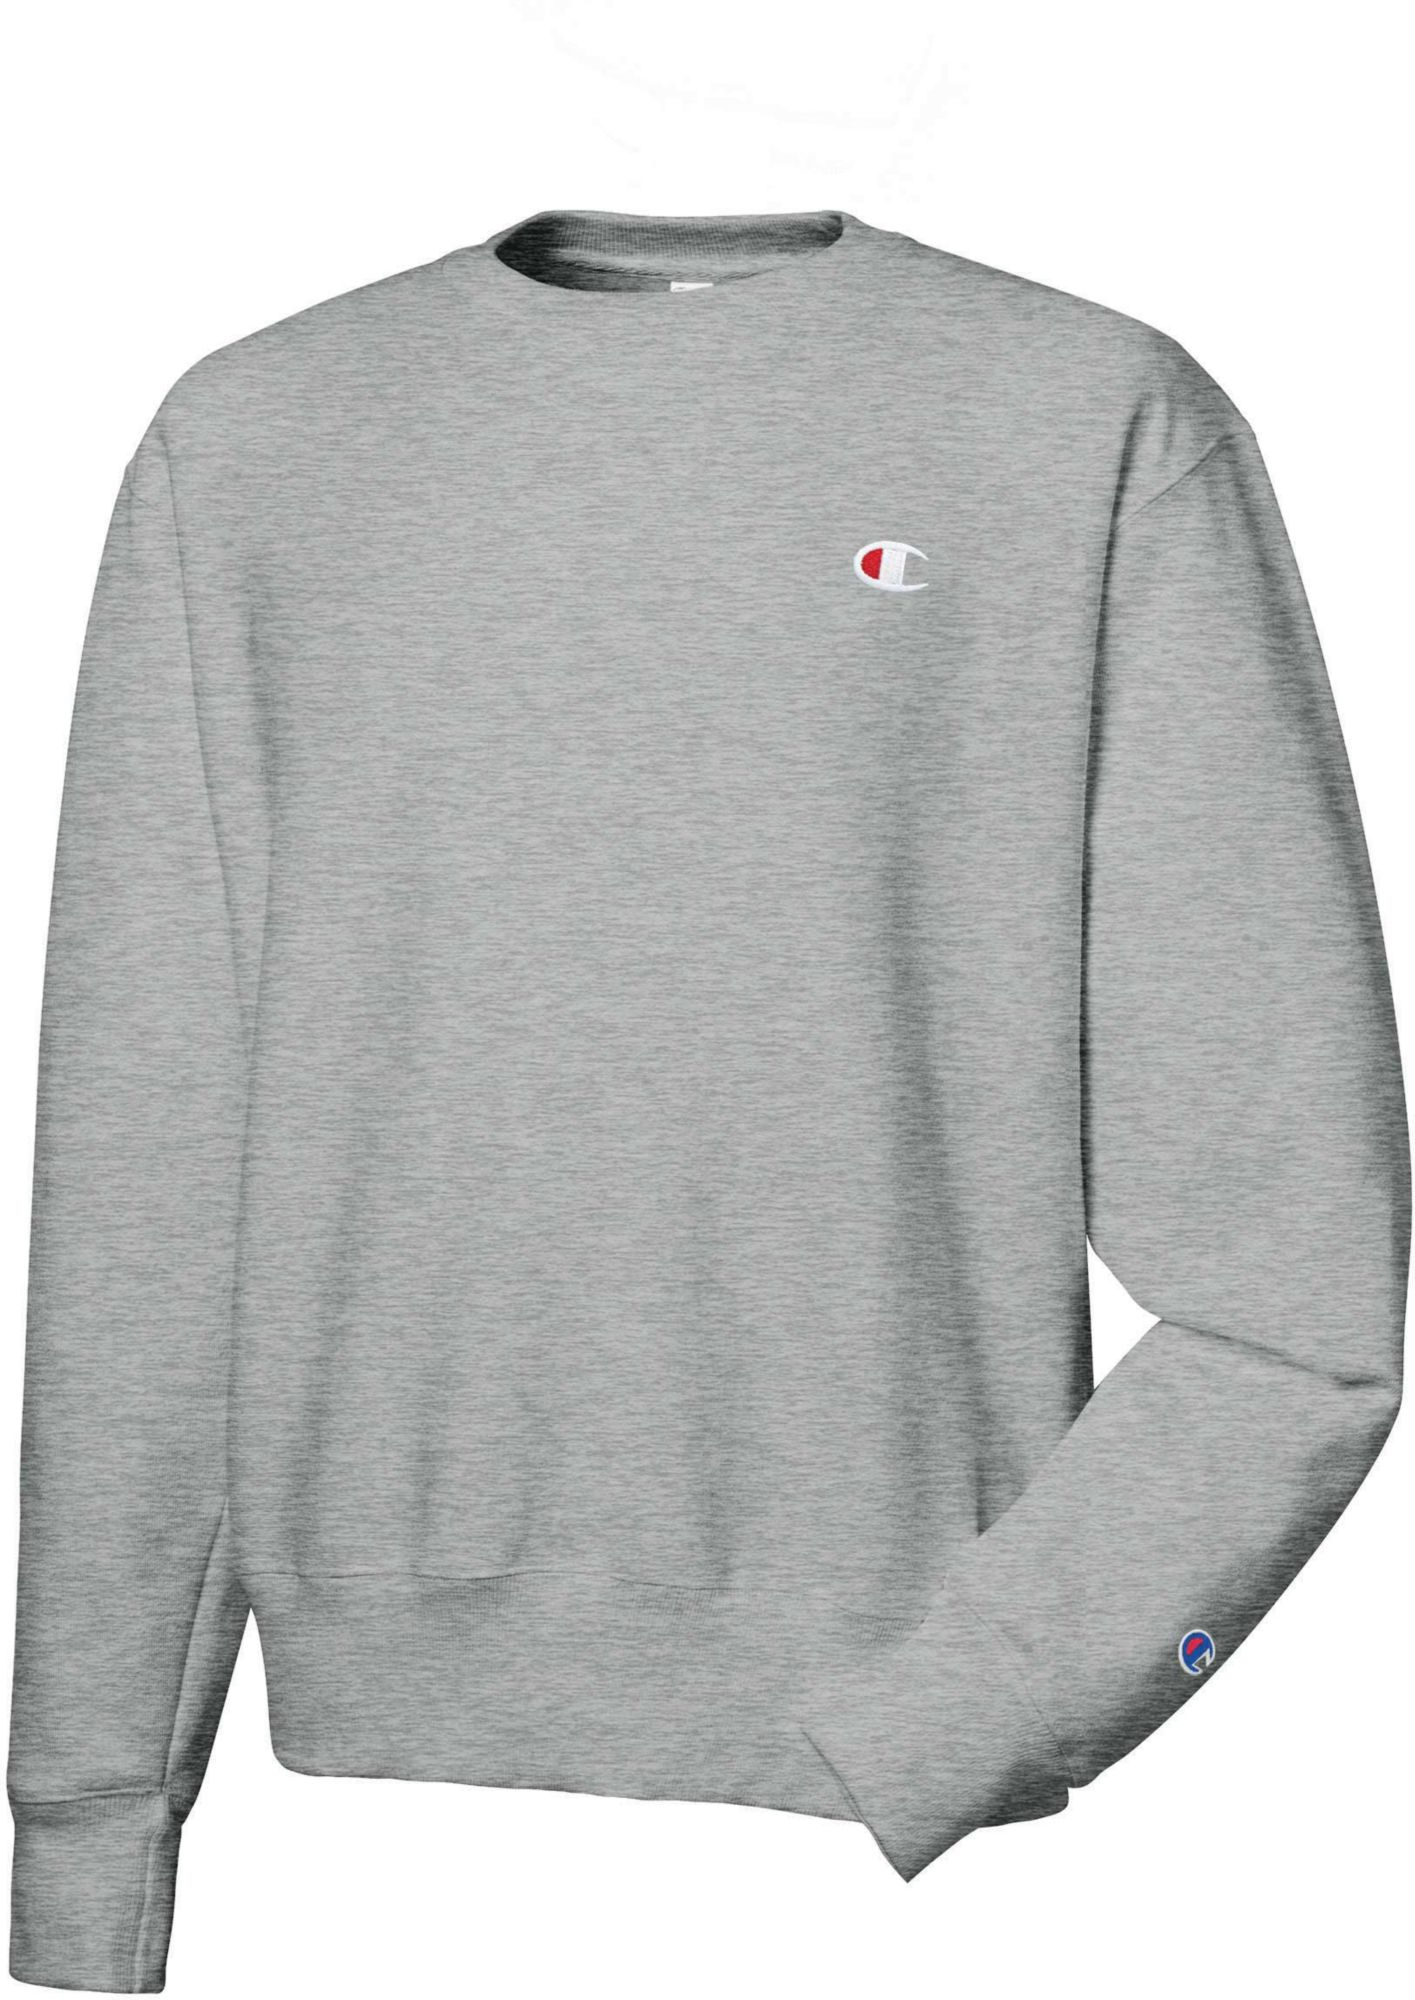 champion sweatshirt mens